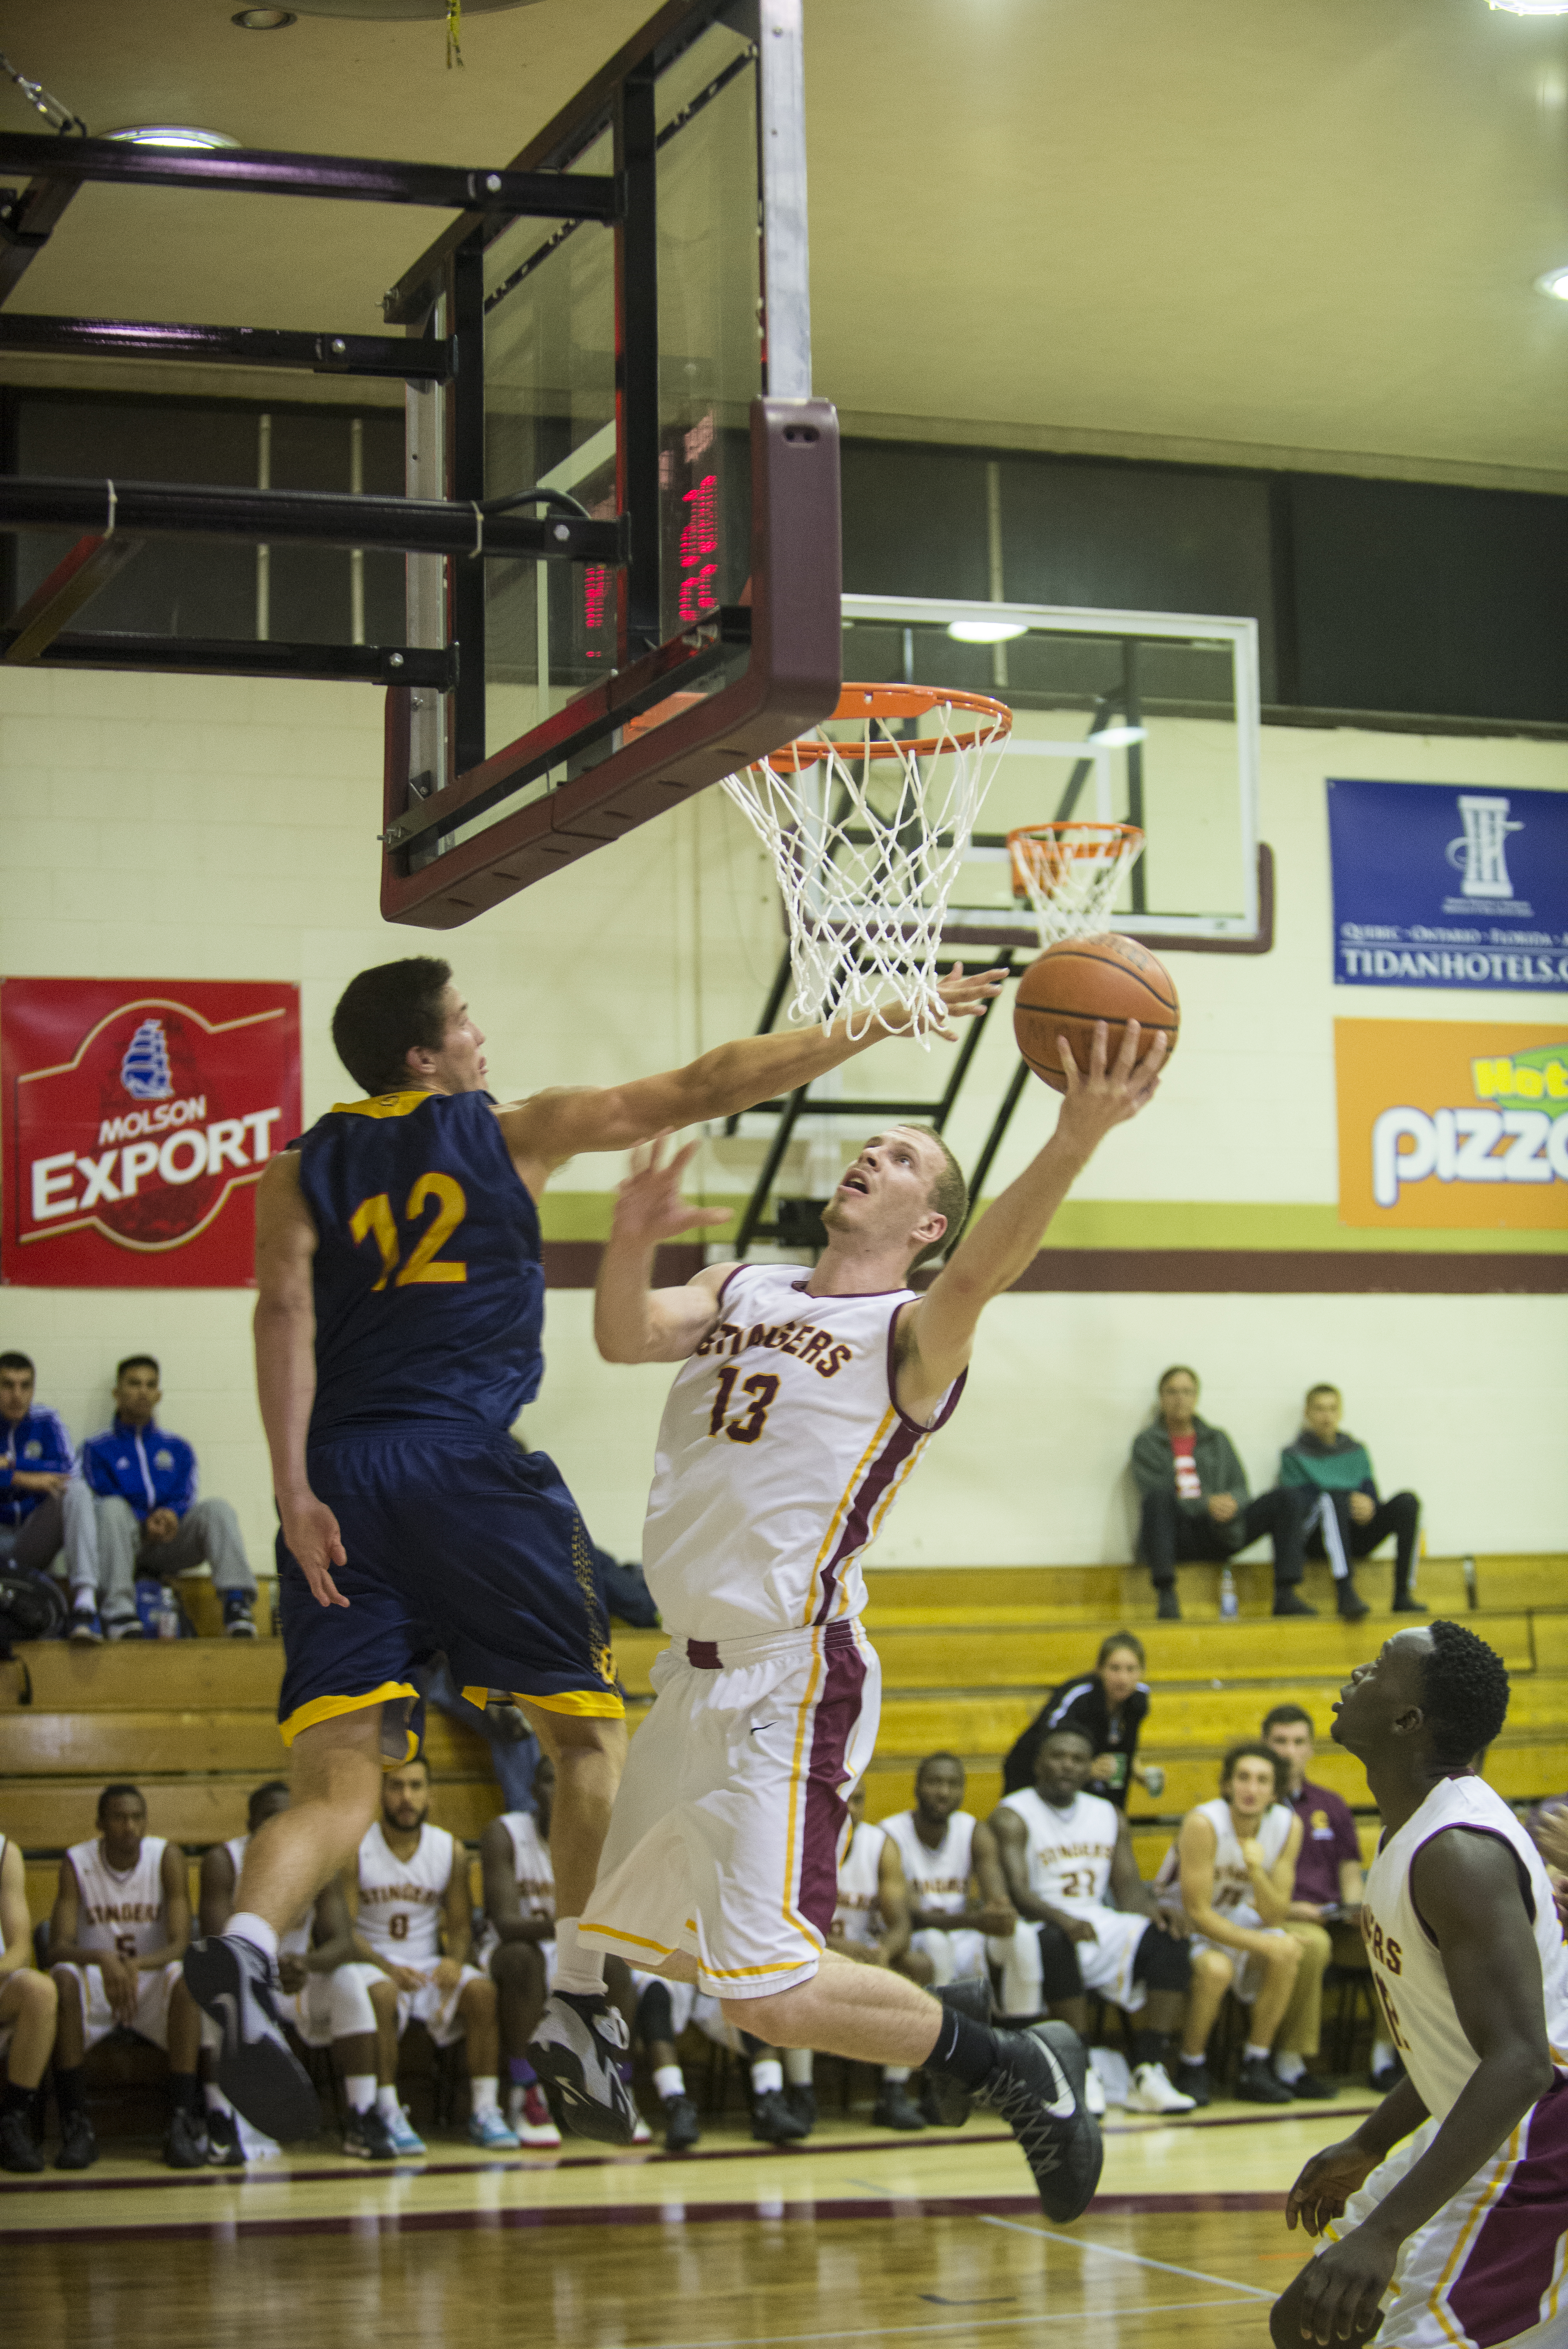 Concordia's Ken Beaulieu goes up for the layup on the Queen's defender. Photo by Andrej Ivanov.